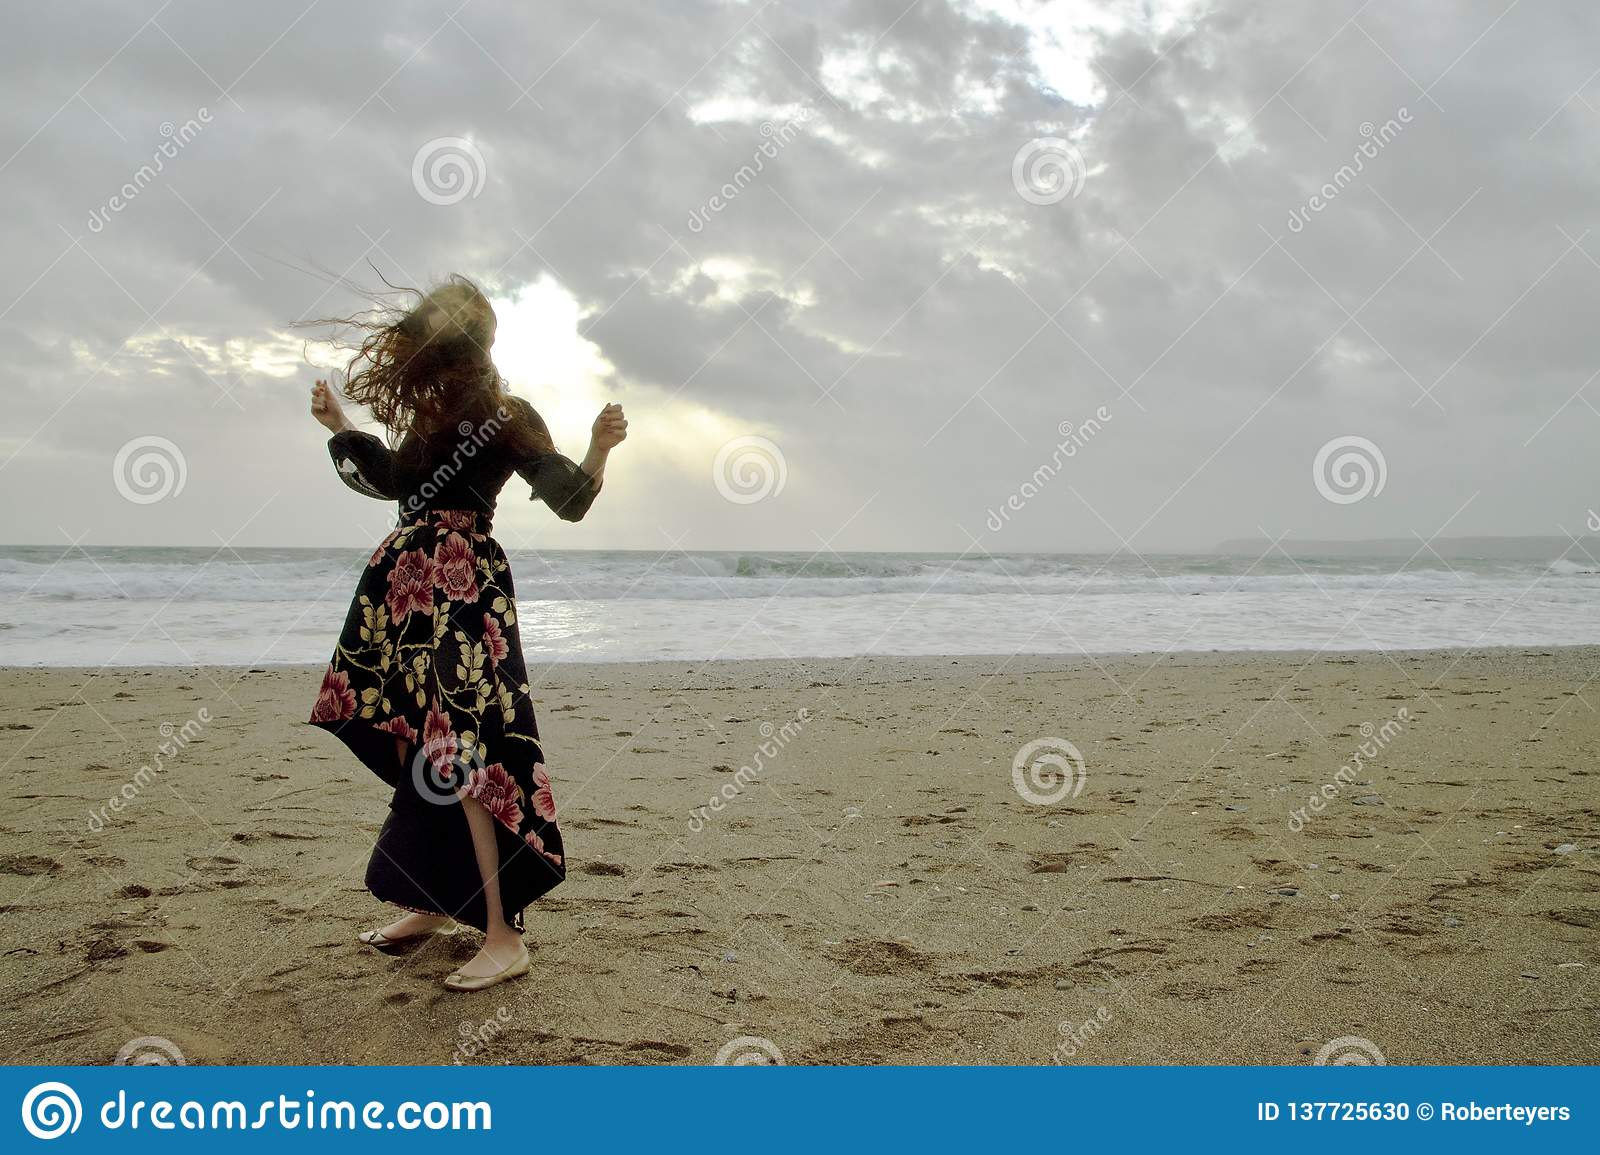 Dramatic portrait of long haired lady in floral formal dress on a stormy beach in front of the sun